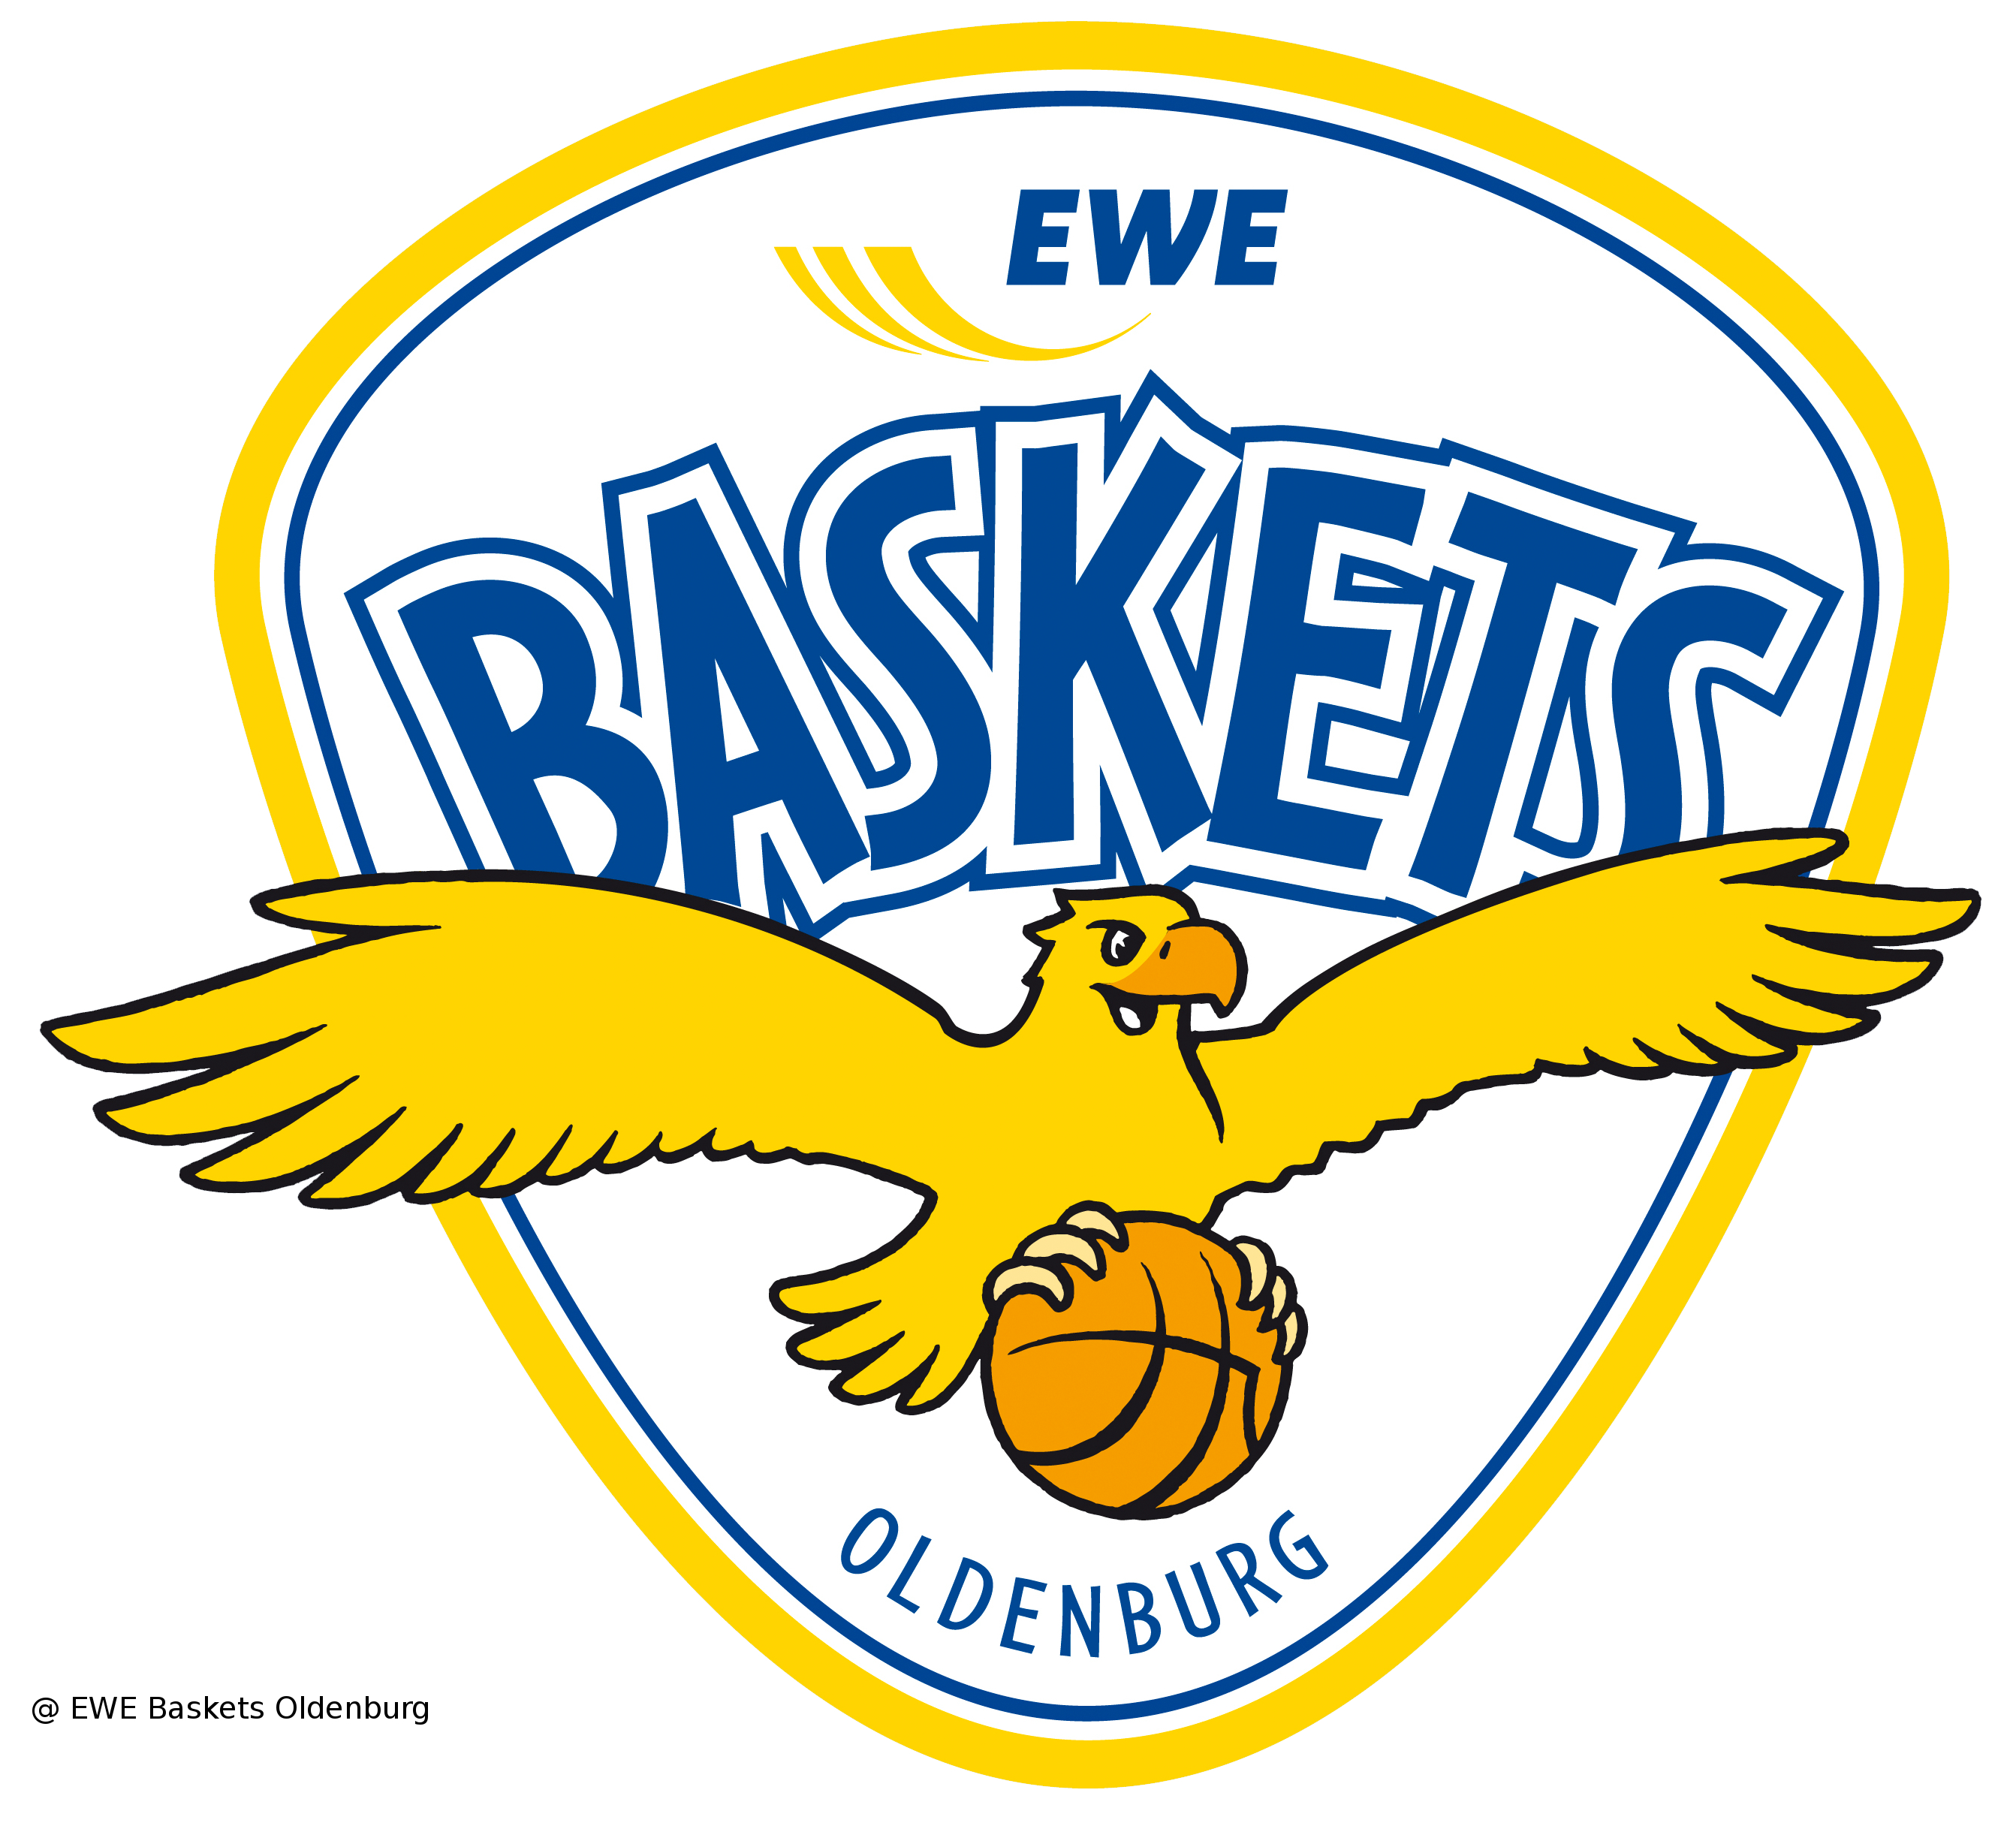 Die EWE Arena – Heimat der EWE Baskets Oldenburg